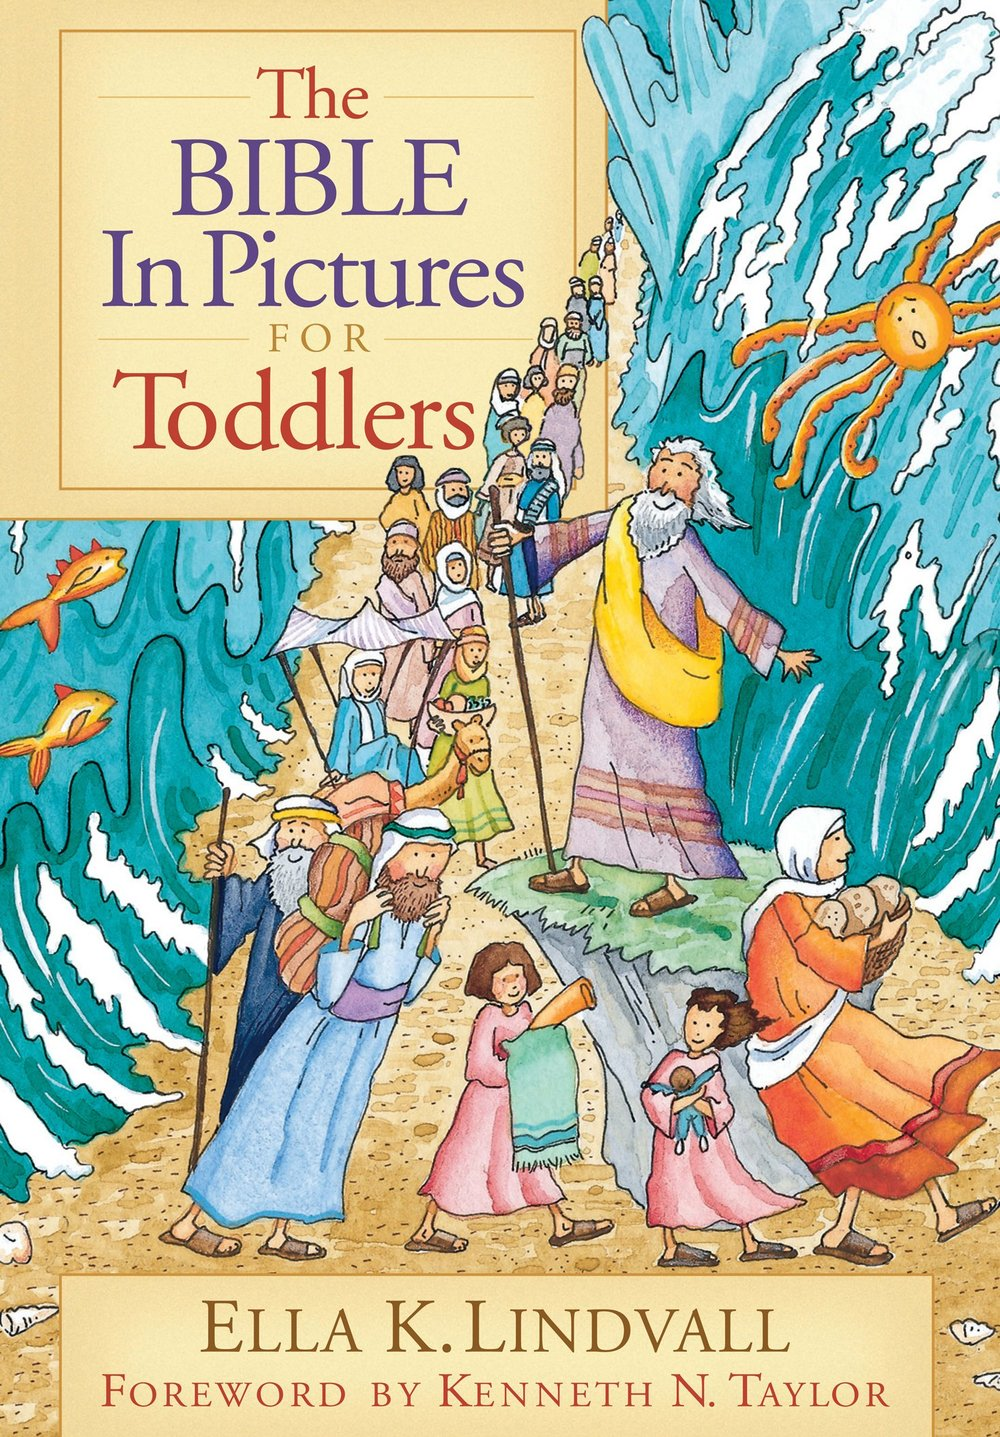 The Bible in Pictures for Toddlers - Ella K. LindvallAges 1-4 Seventy of the most loved stories from both the Old and New Testaments are retold in an entertaining and expressive manner.